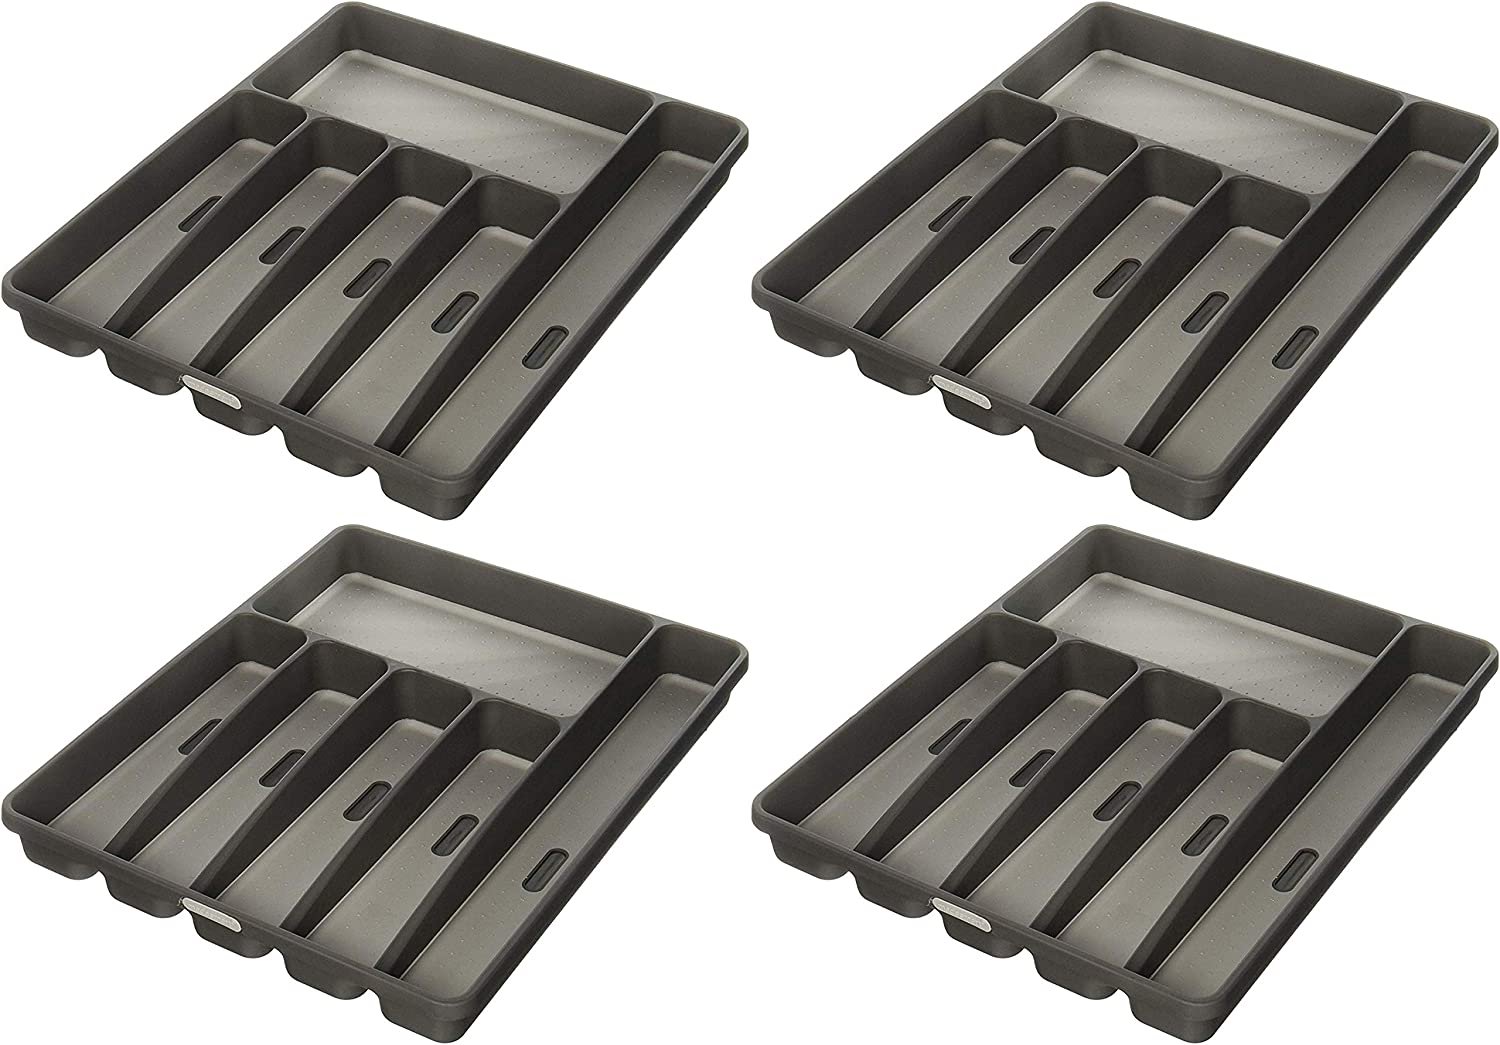 WhiteCLASSIC COLLECTION6-Compart madesmart Classic Large Silverware Tray